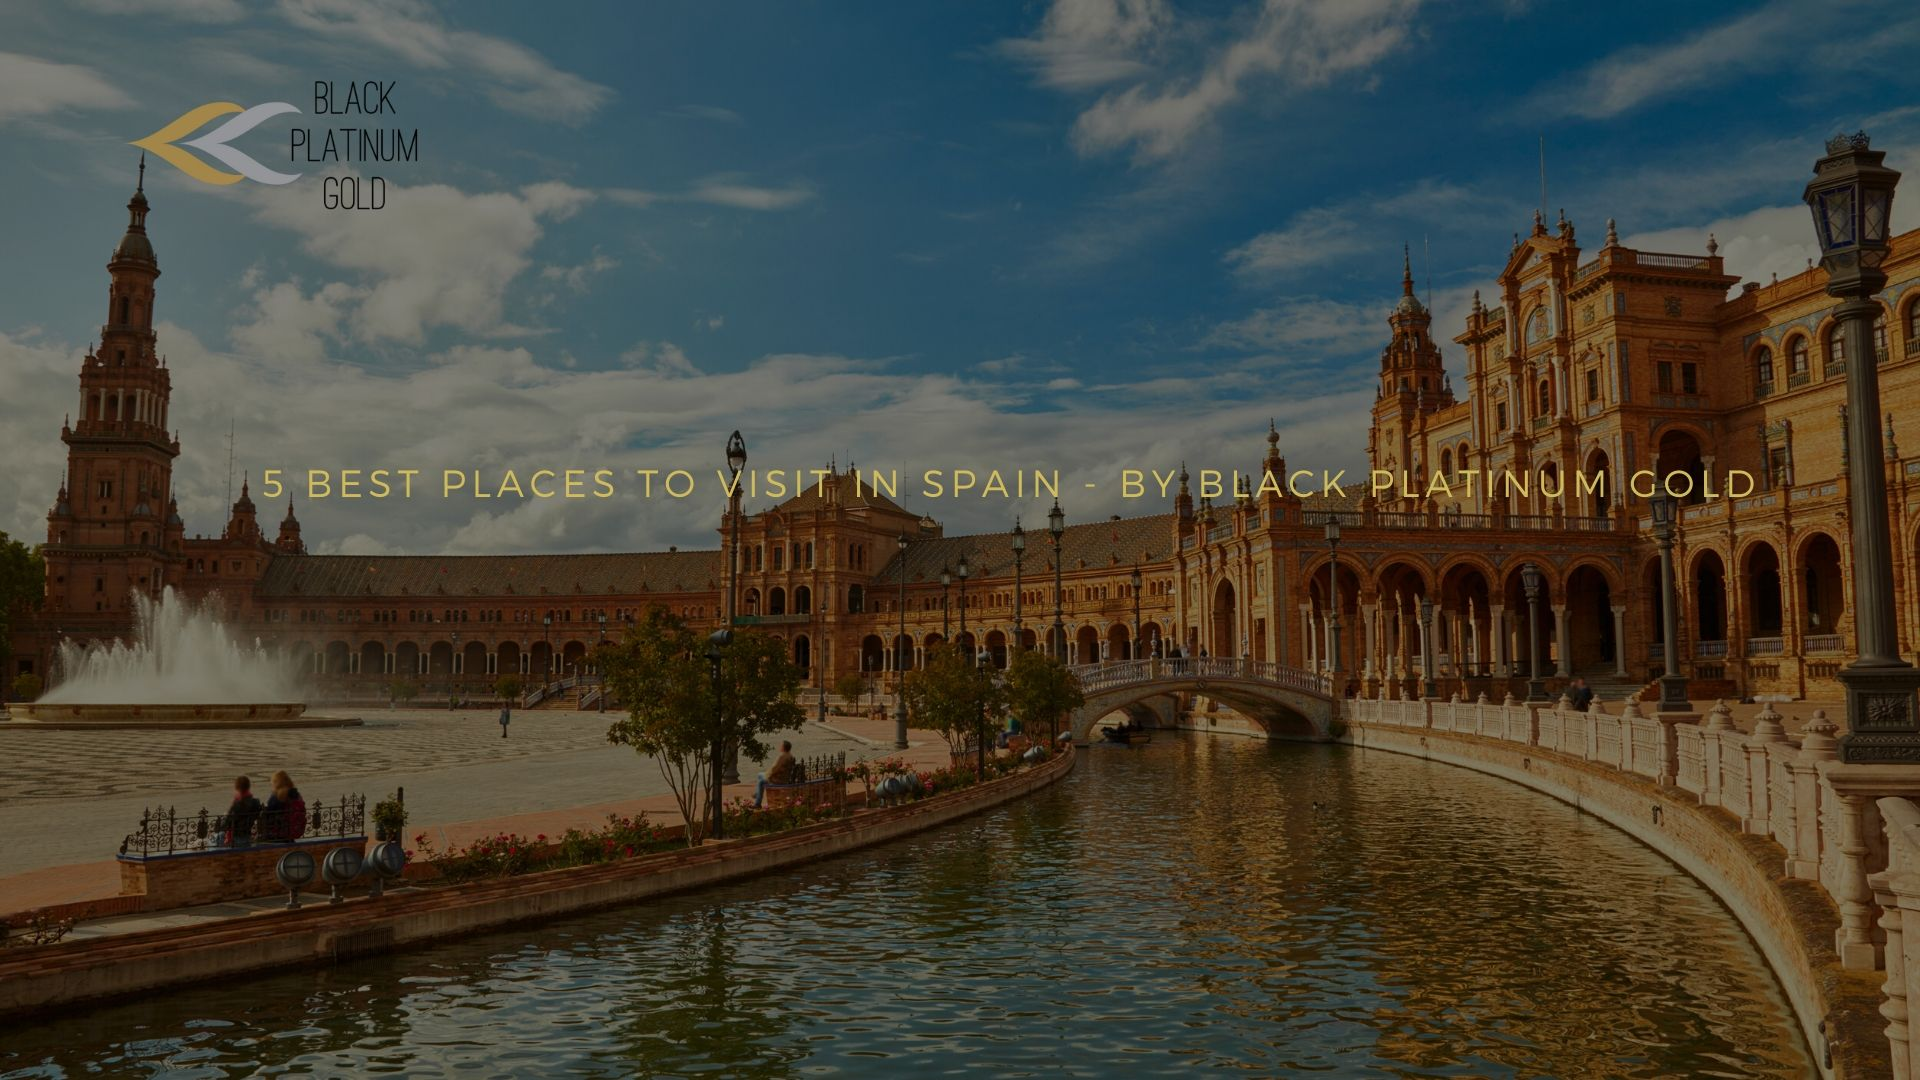 5 best places to visit in Spain - black platinum gold